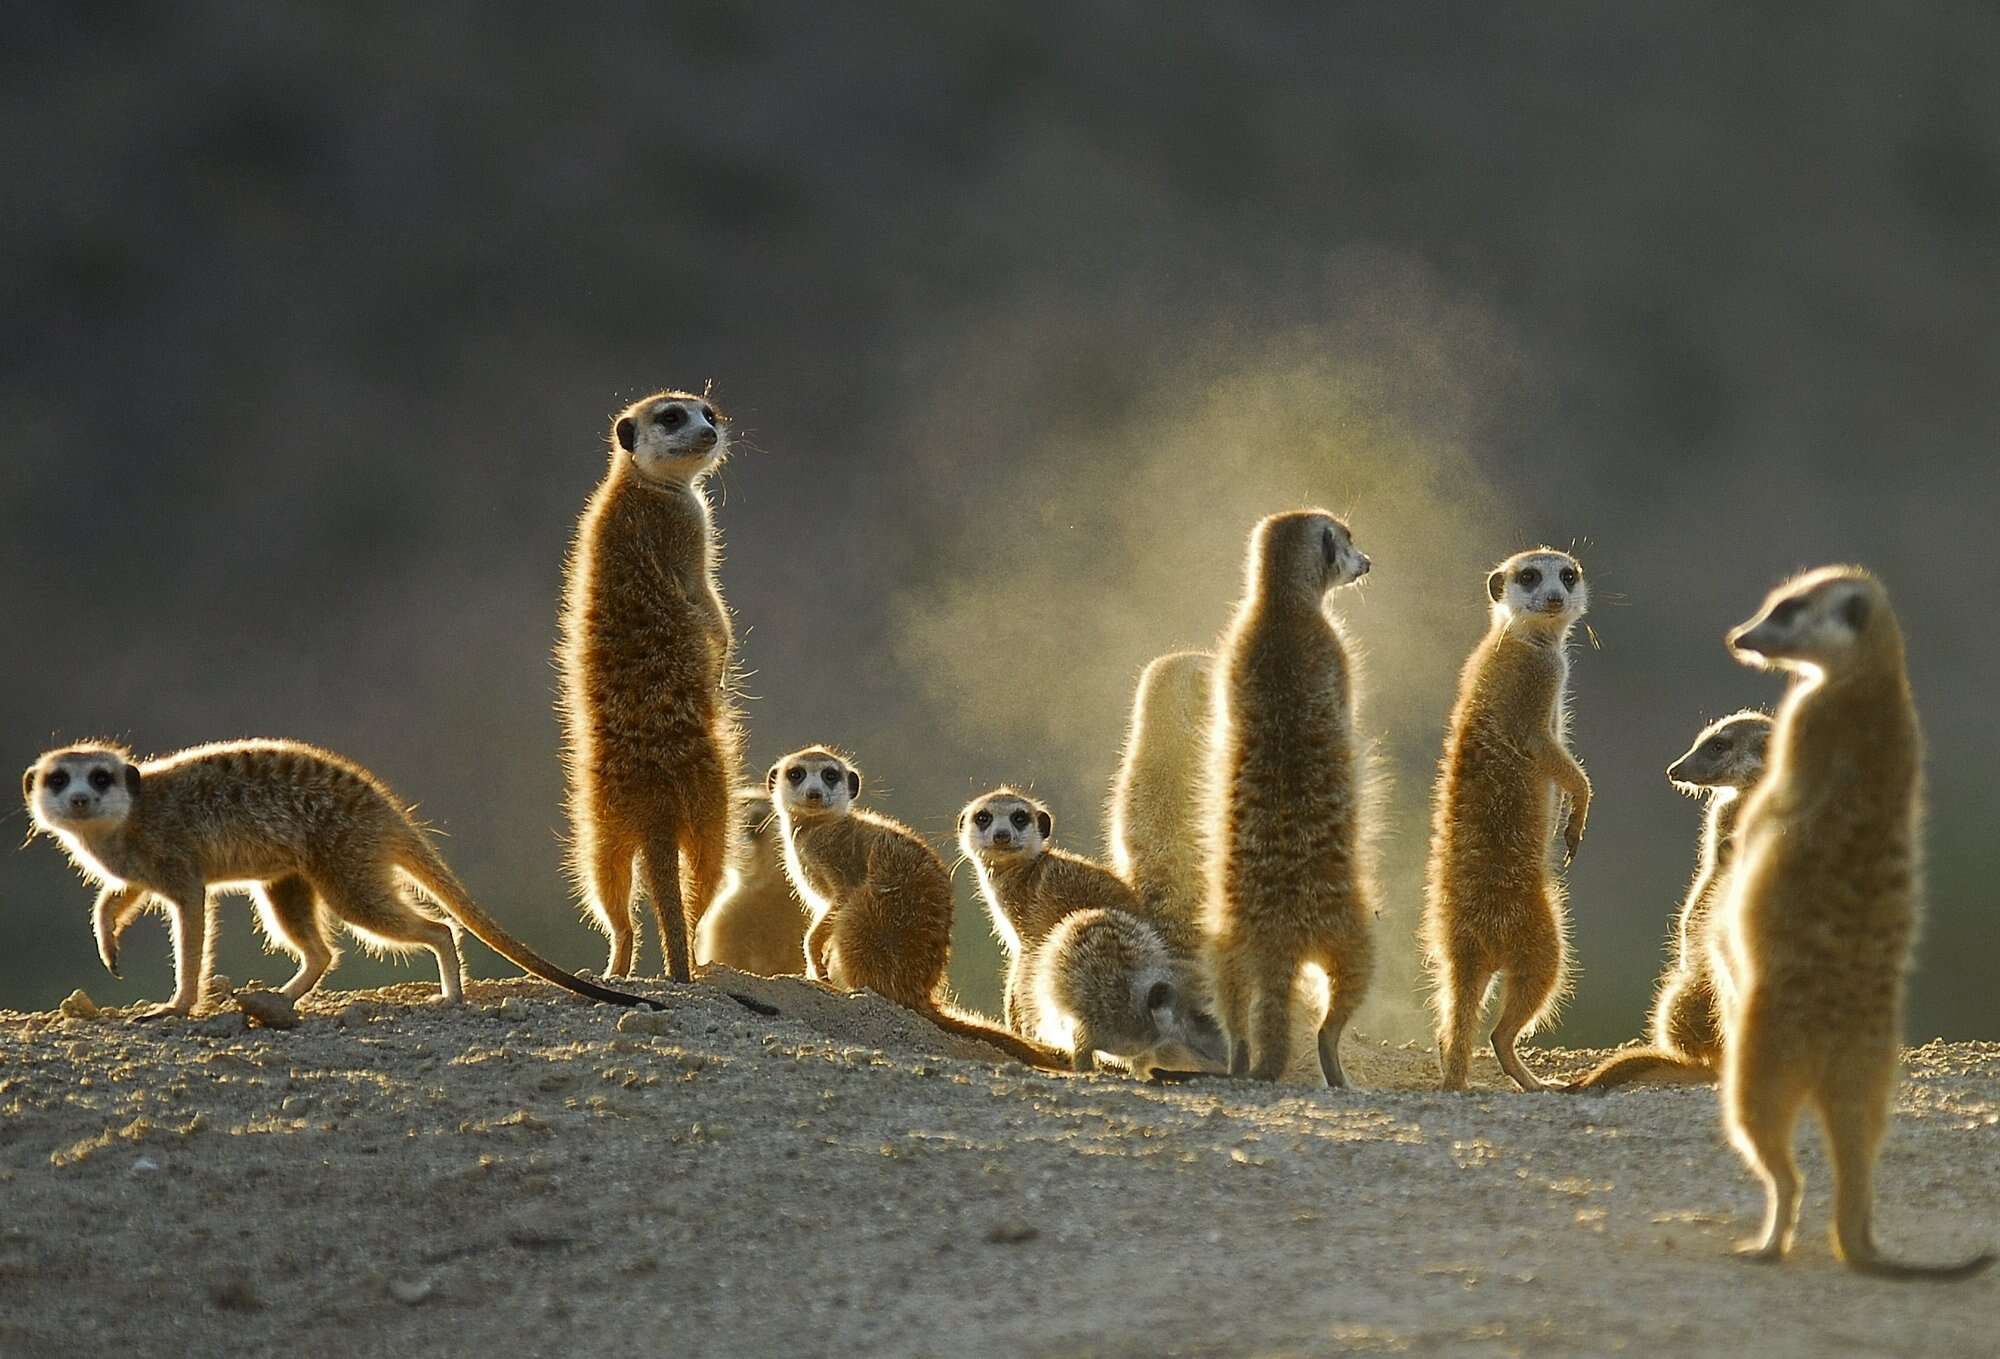 Meerkat self-drive safari – Cape - including Kgalagadi Transfrontier Park, Augrabies Falls National Park, Namaqualand and Cape Town.